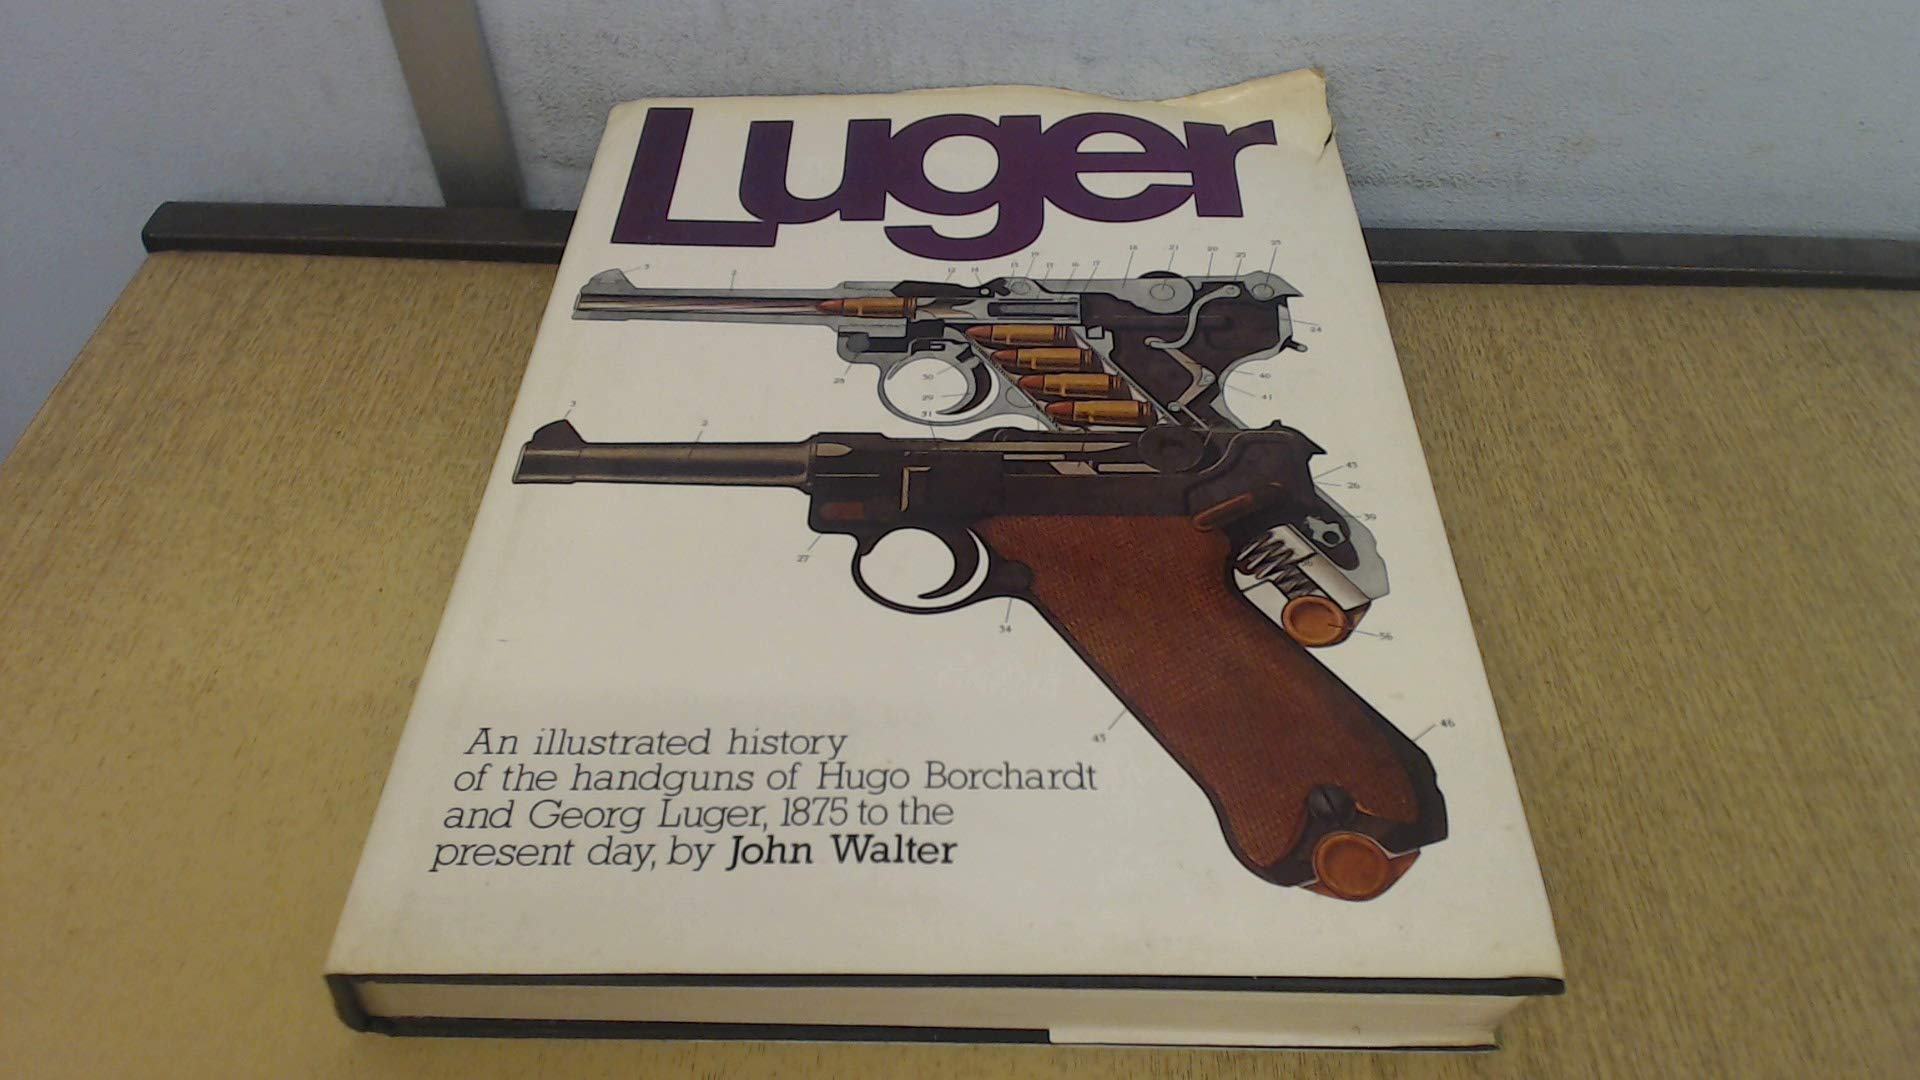 Luger: An illustrated history of the handguns of Hugo